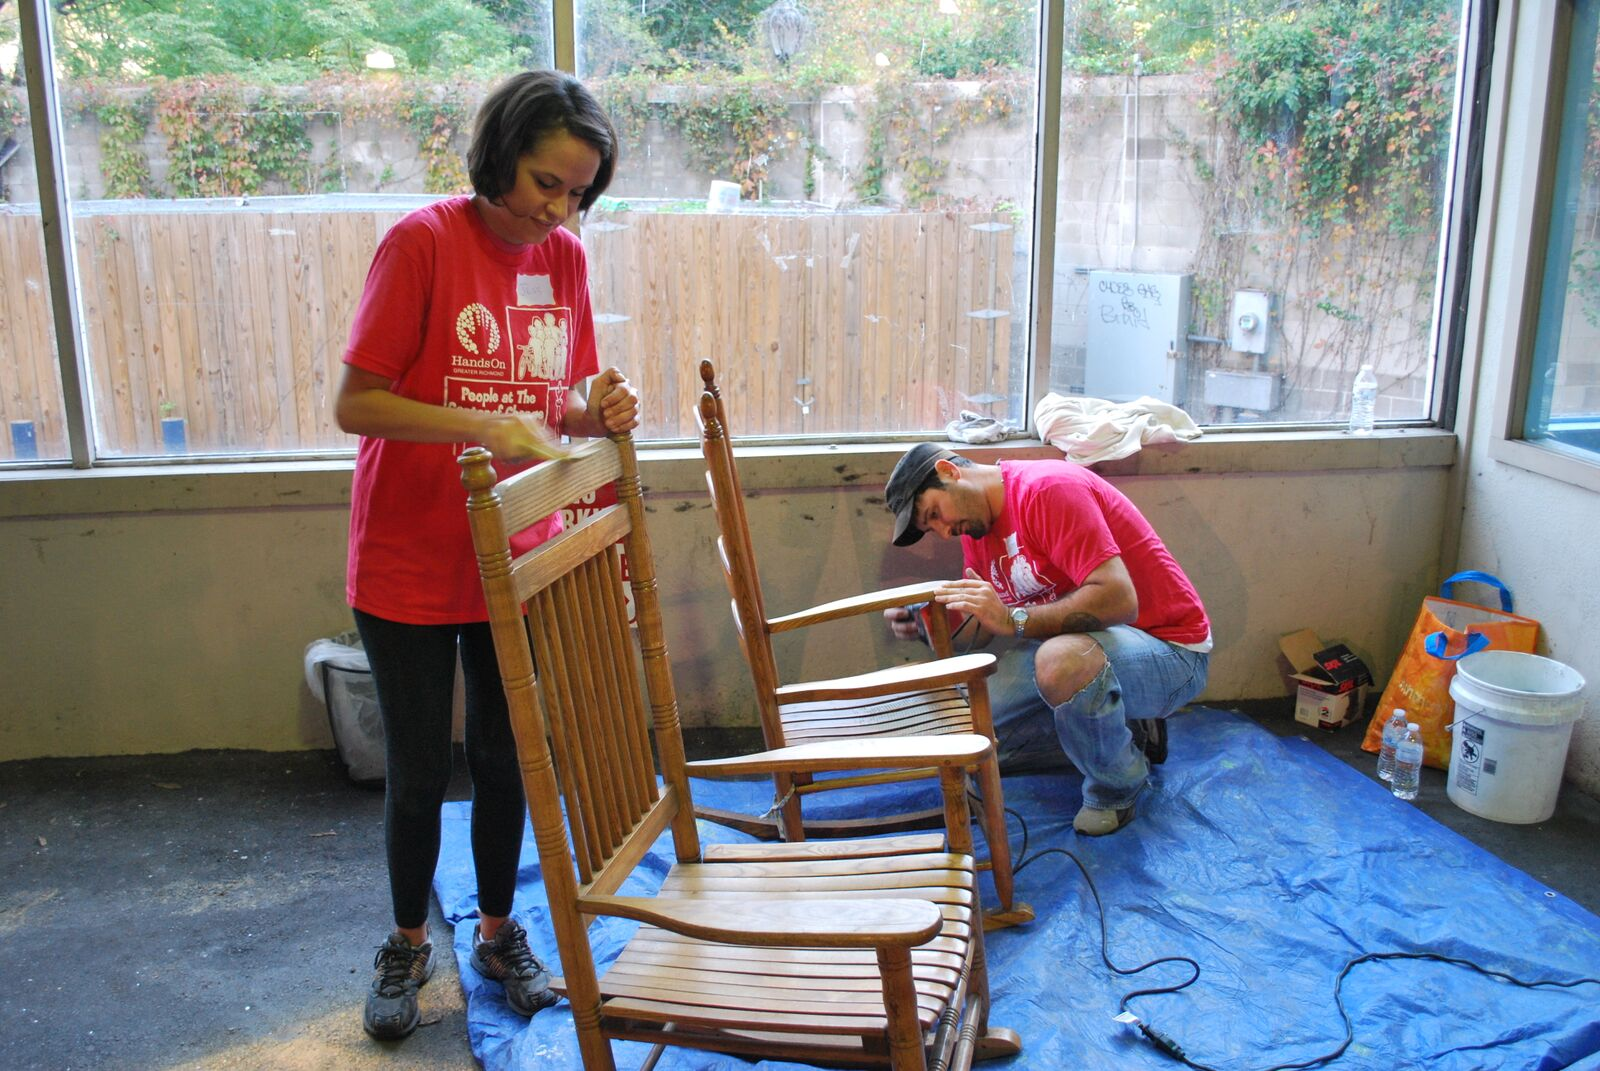 News from the community 60 nonprofits to benefit from volunteer handson day will also feature do it yourself diy projects and drop in projects so volunteers solutioingenieria Image collections